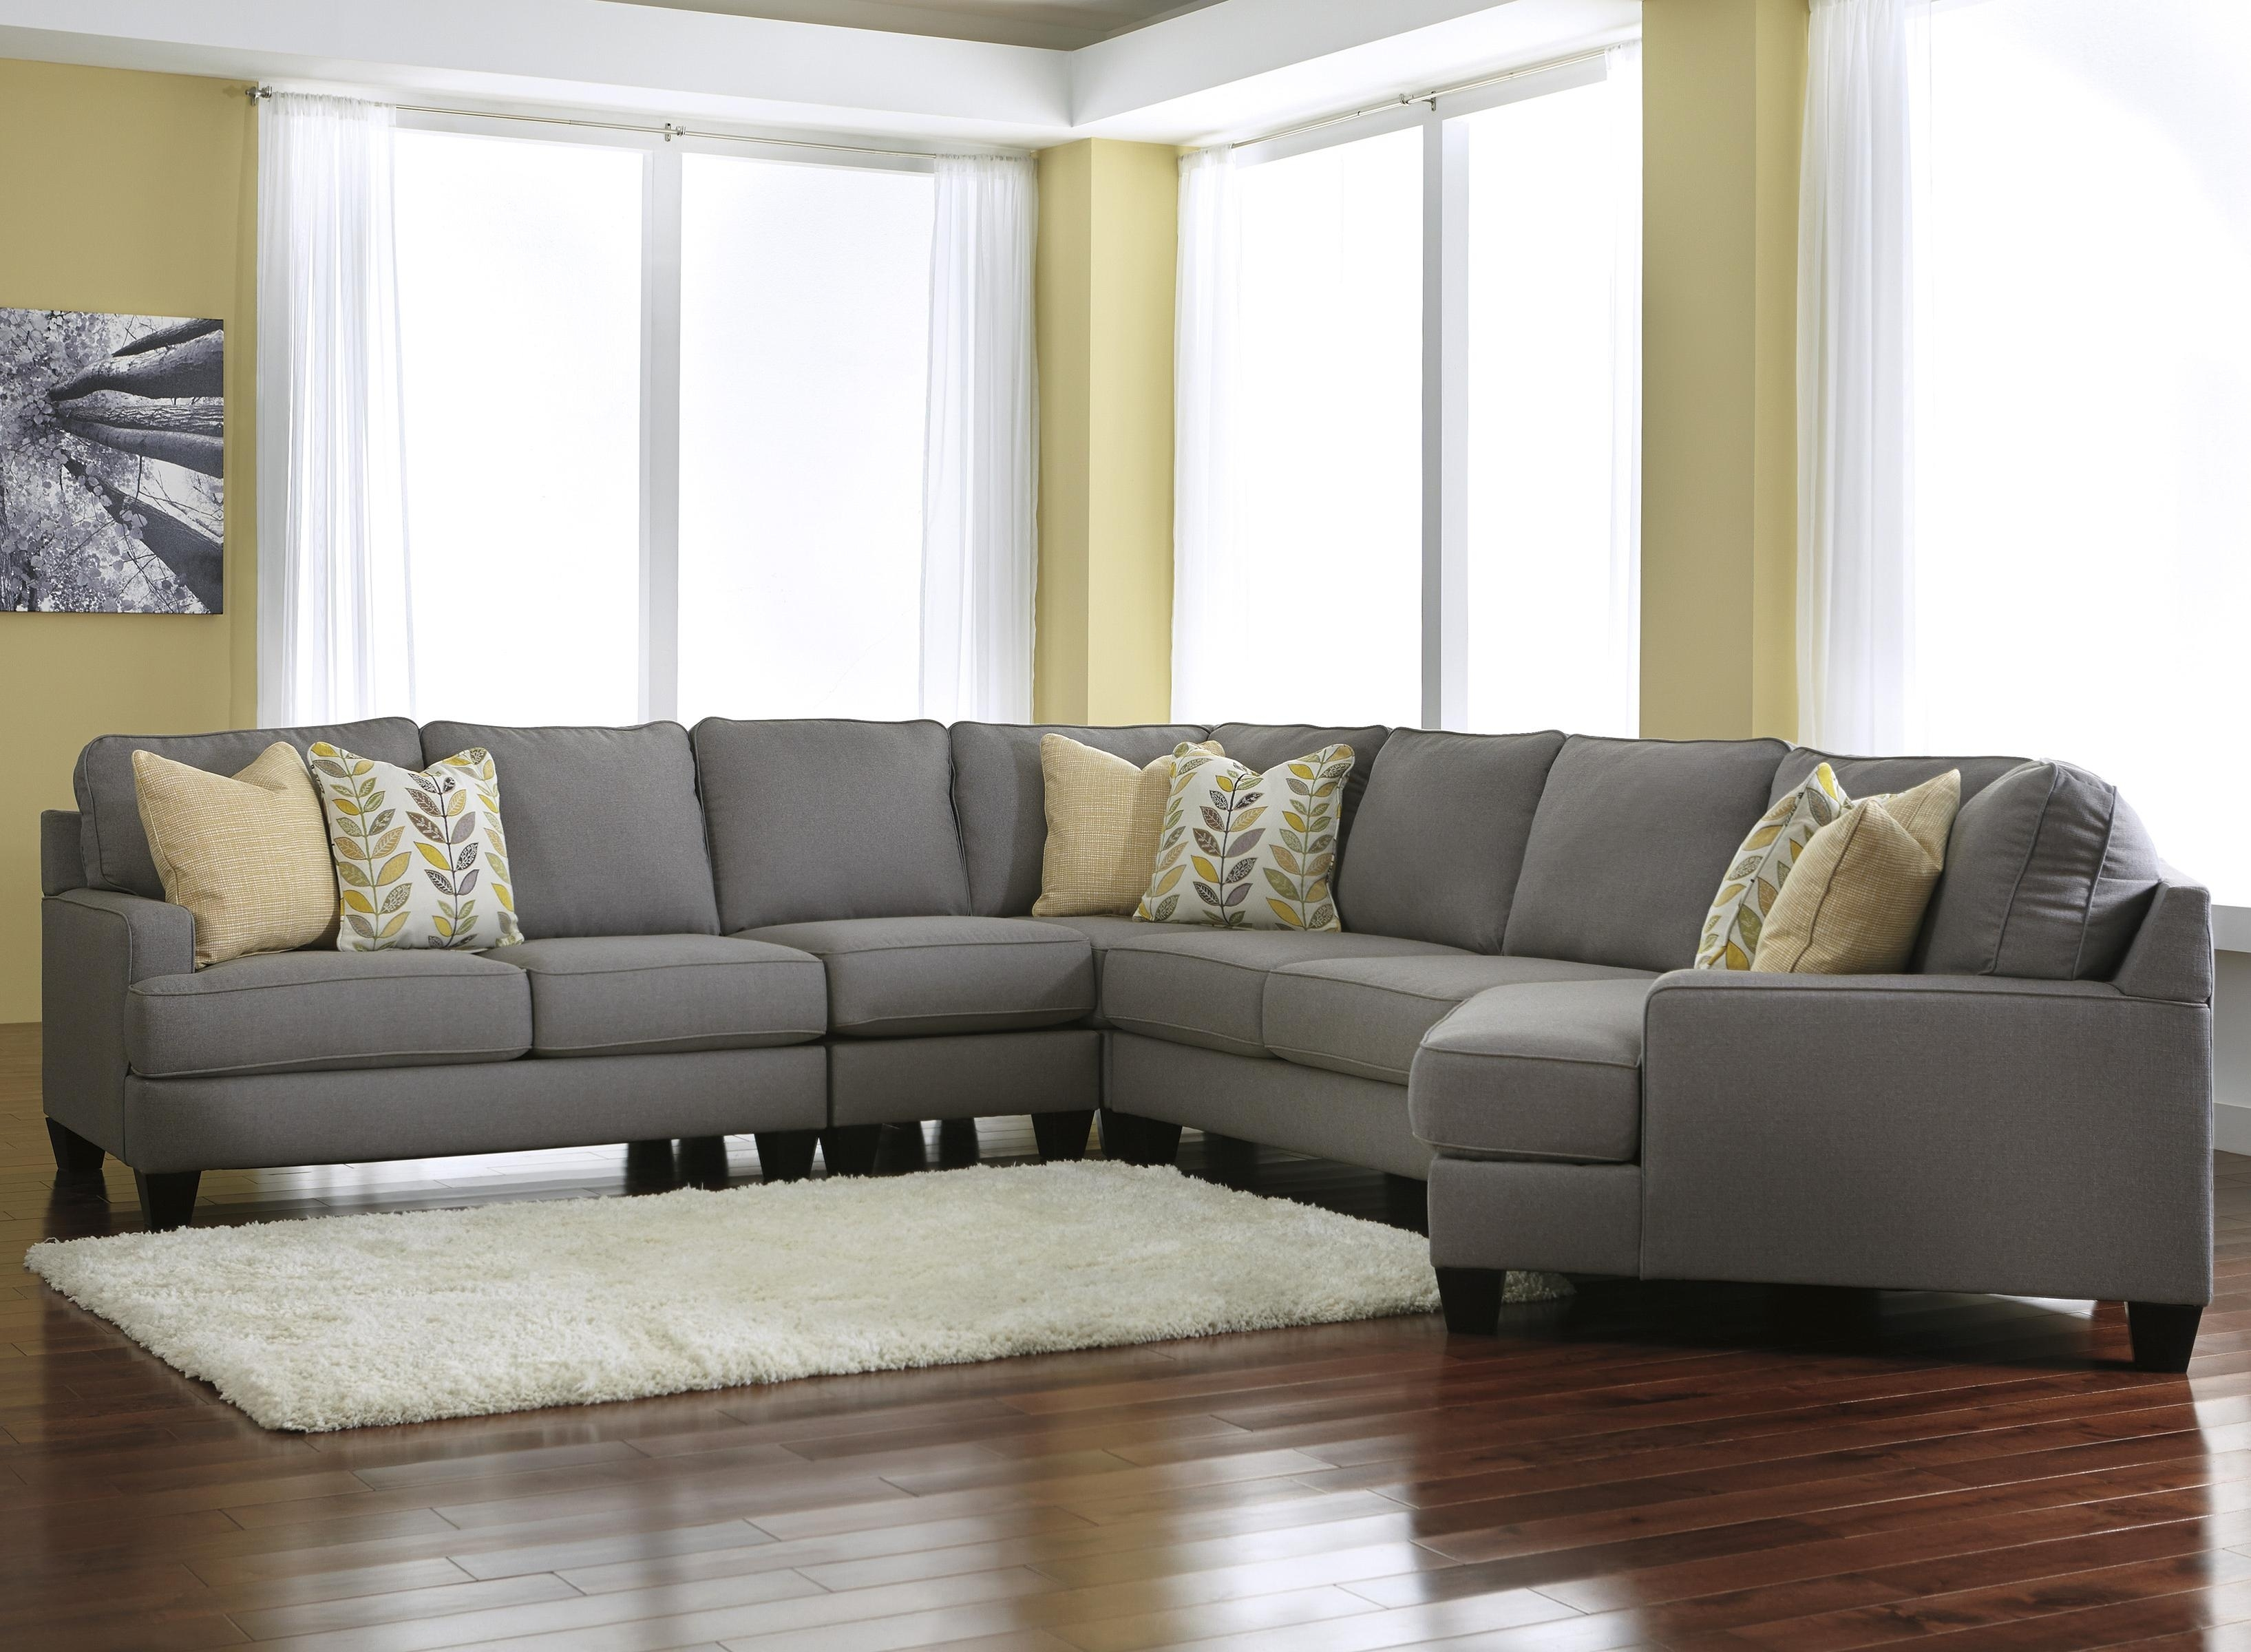 Chamberly – Alloy 5 Piece Sectional Sofa With Right Cuddler With Regard To Eau Claire Wi Sectional Sofas (View 3 of 10)